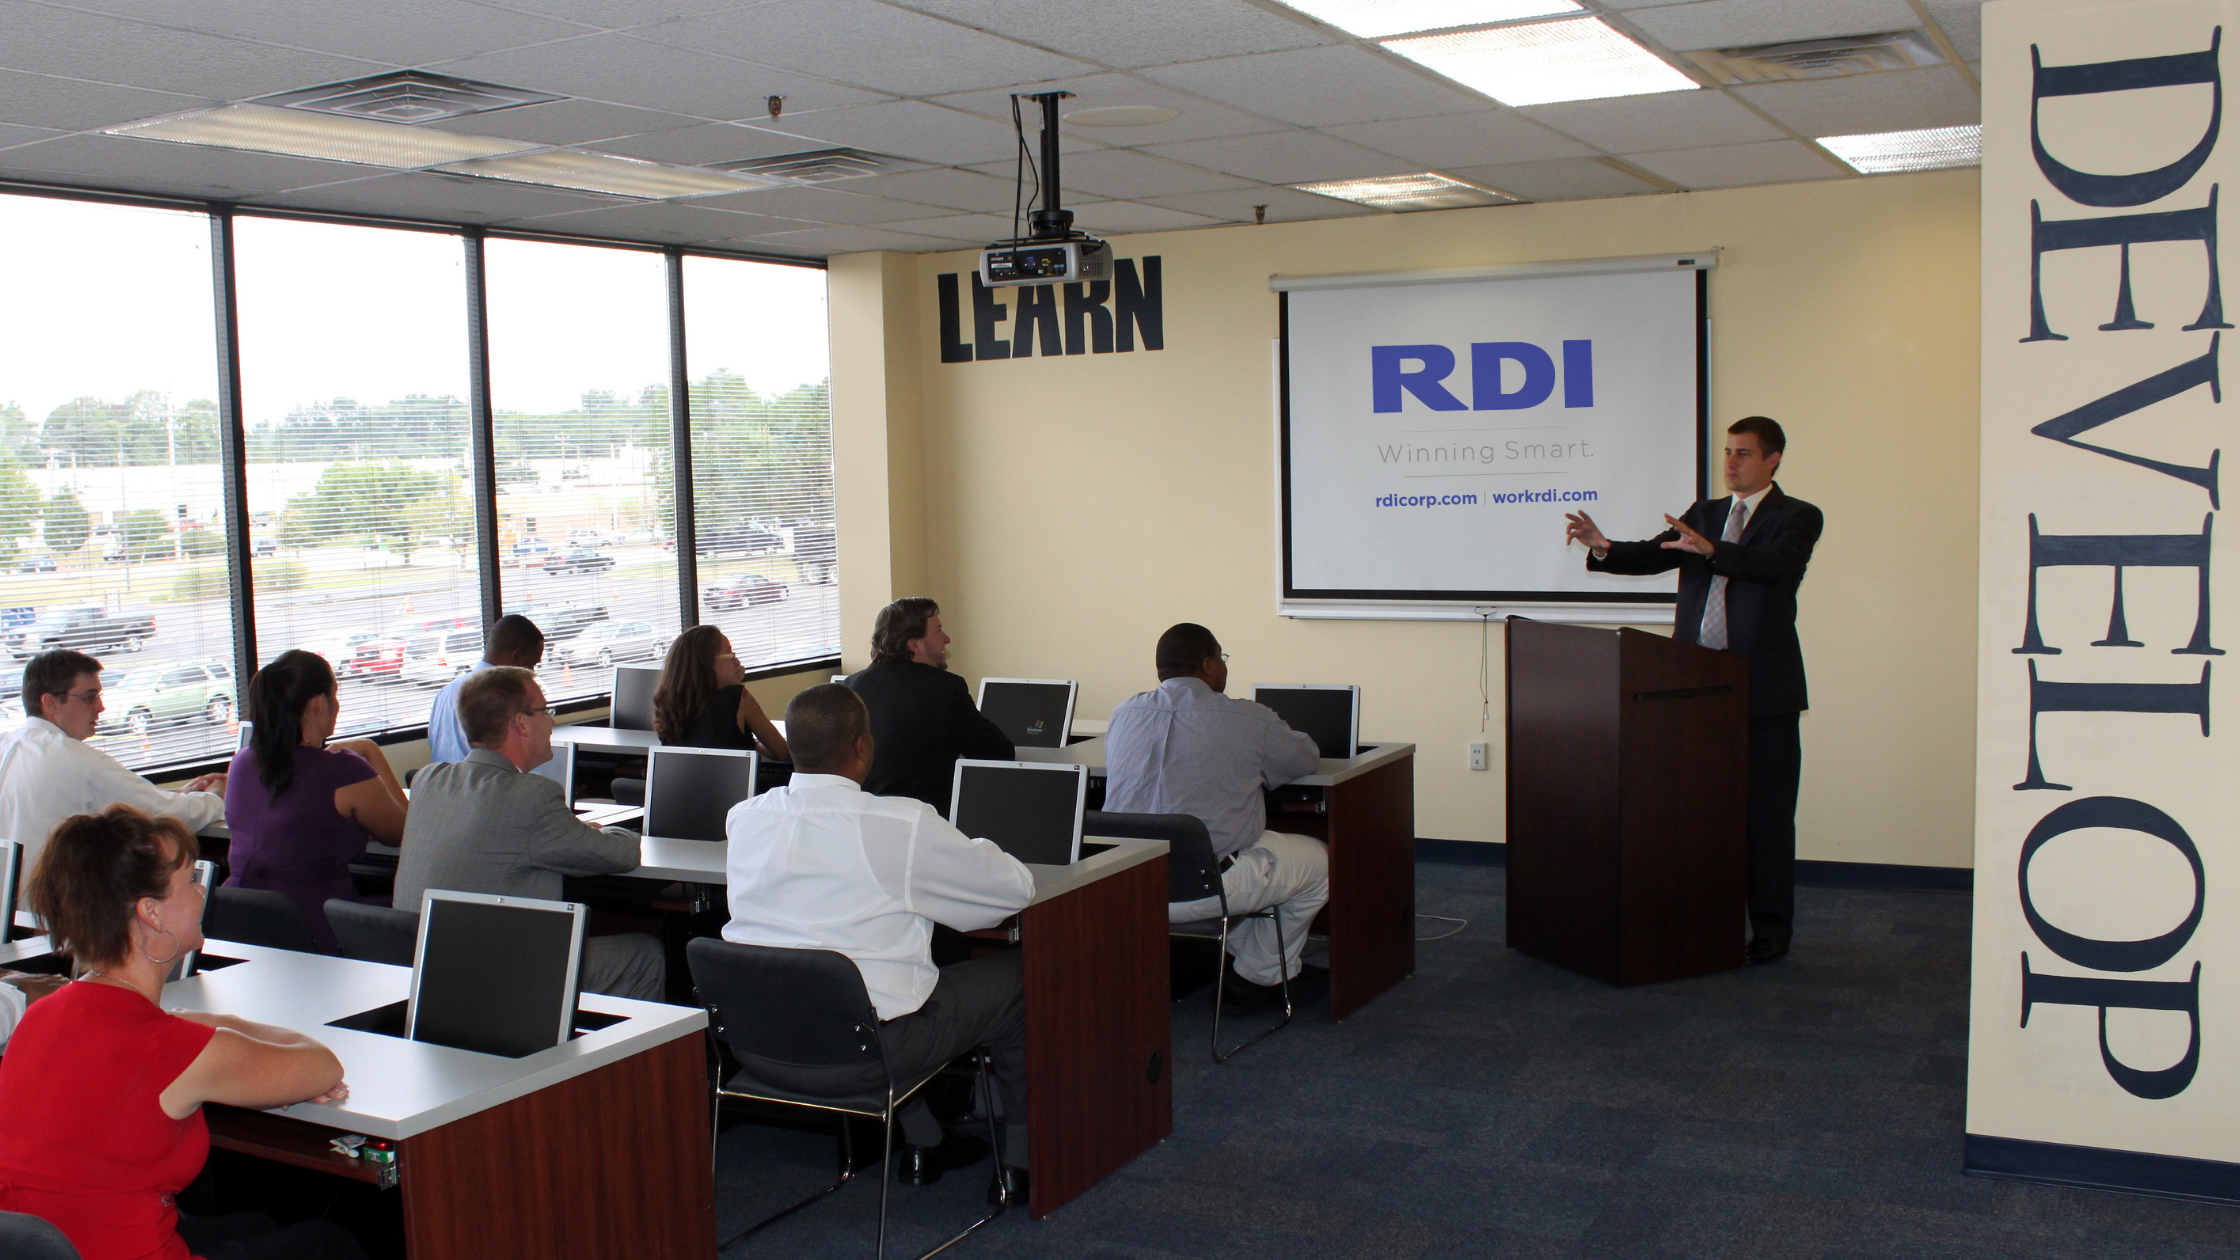 RDI Corporation - leadership and culture